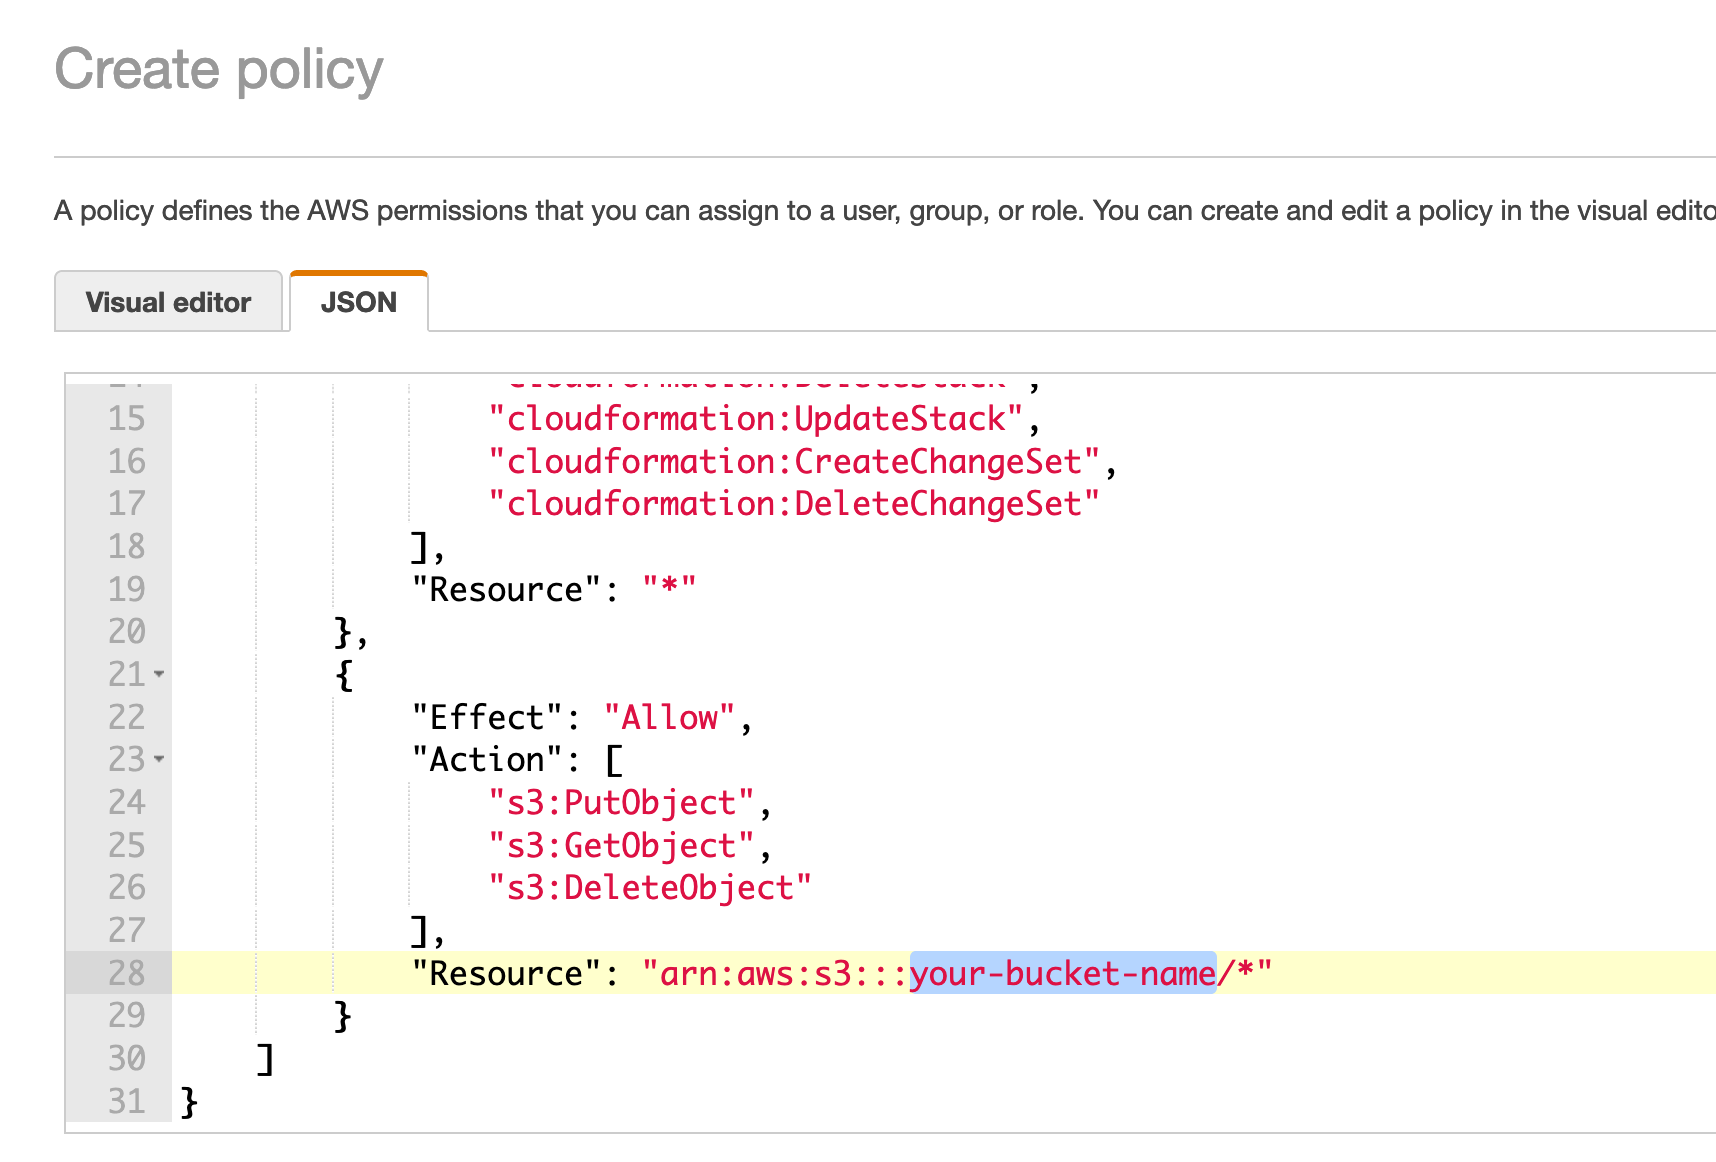 Adding JSON policy template